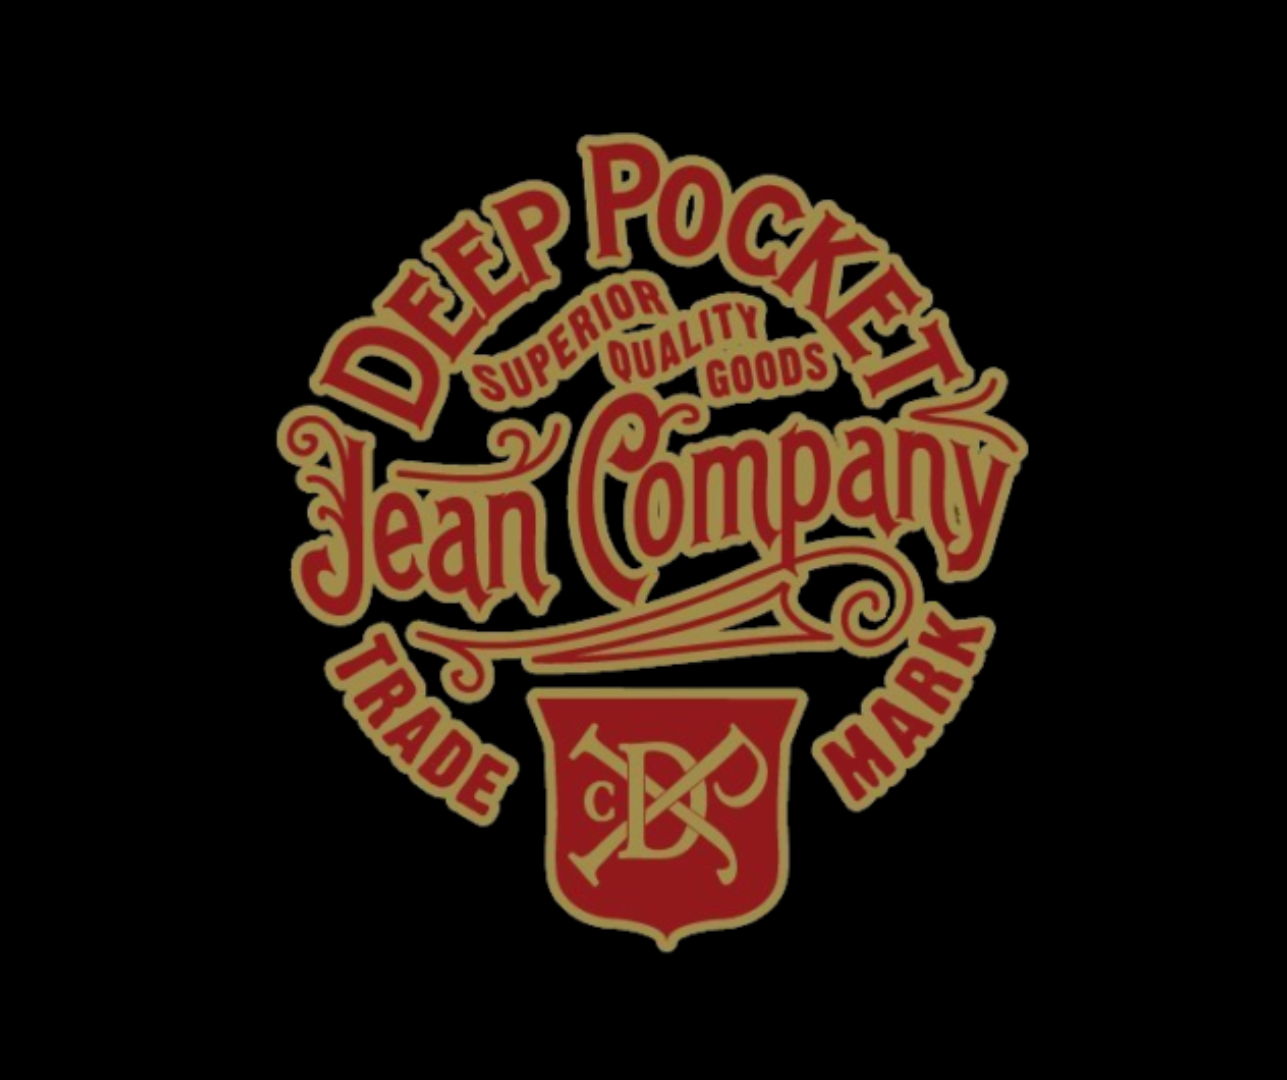 Deep Pocket Jean Company